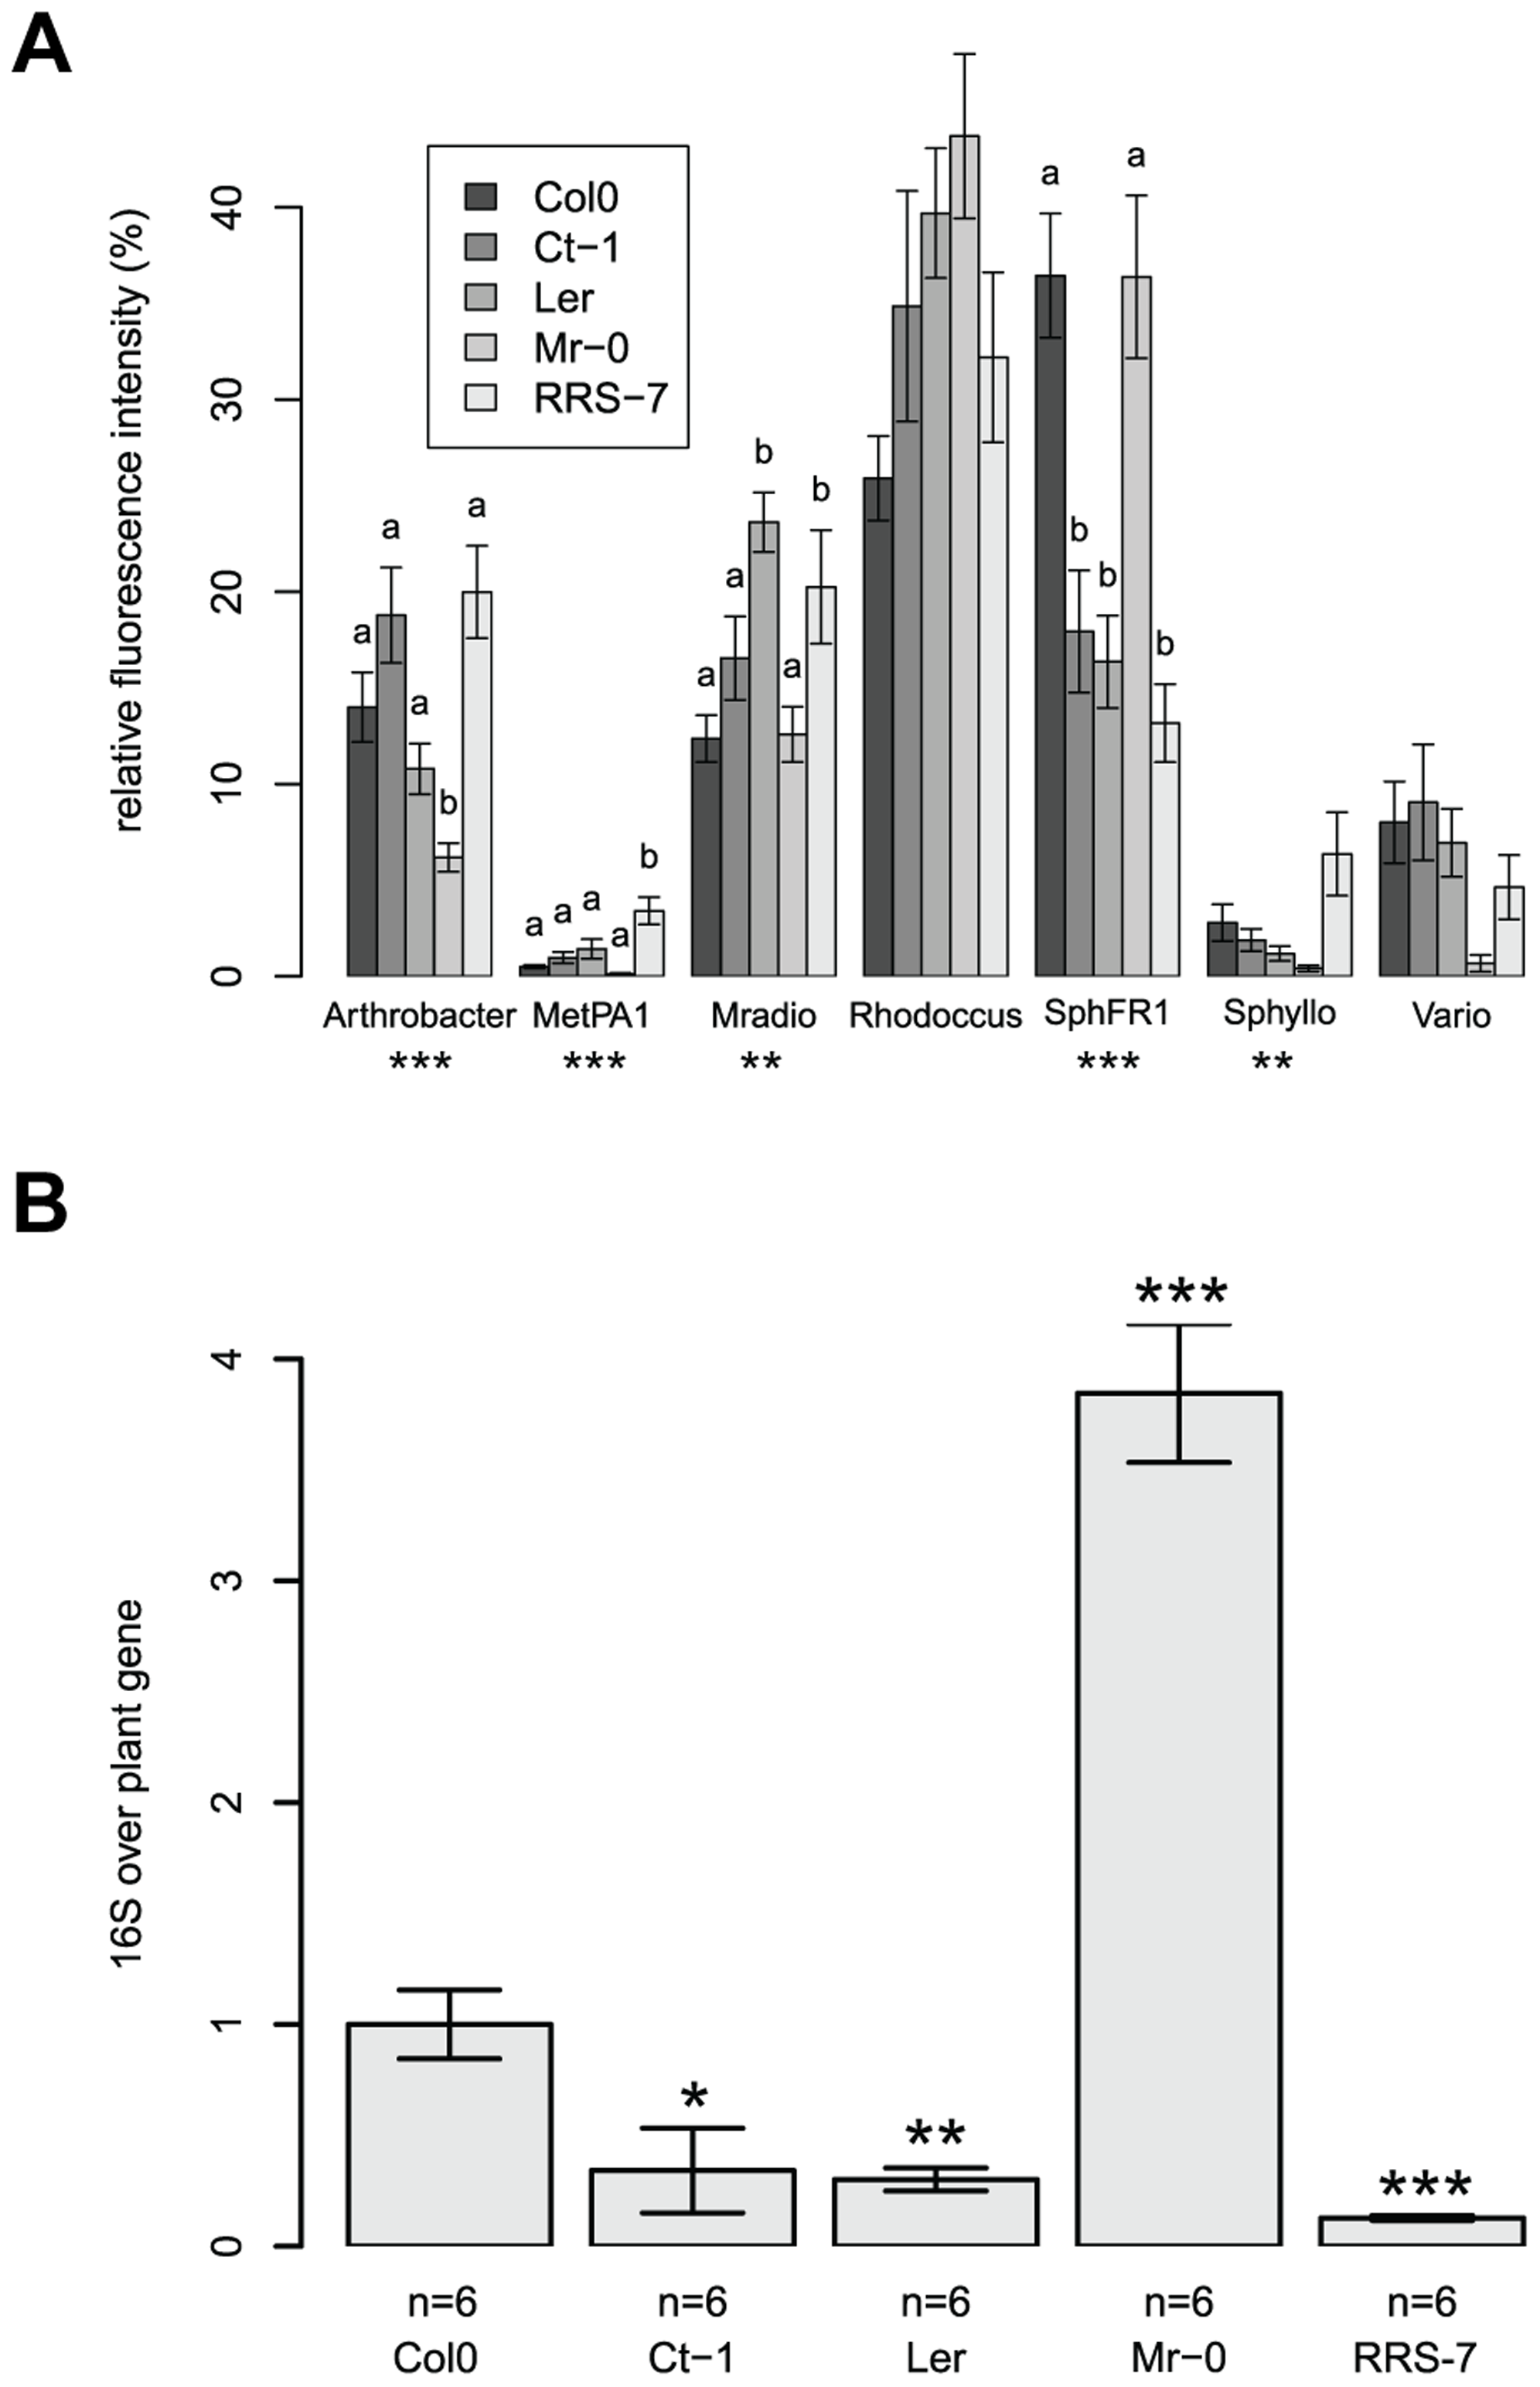 Natural variation in the host has an effect on its associated bacterial communities.